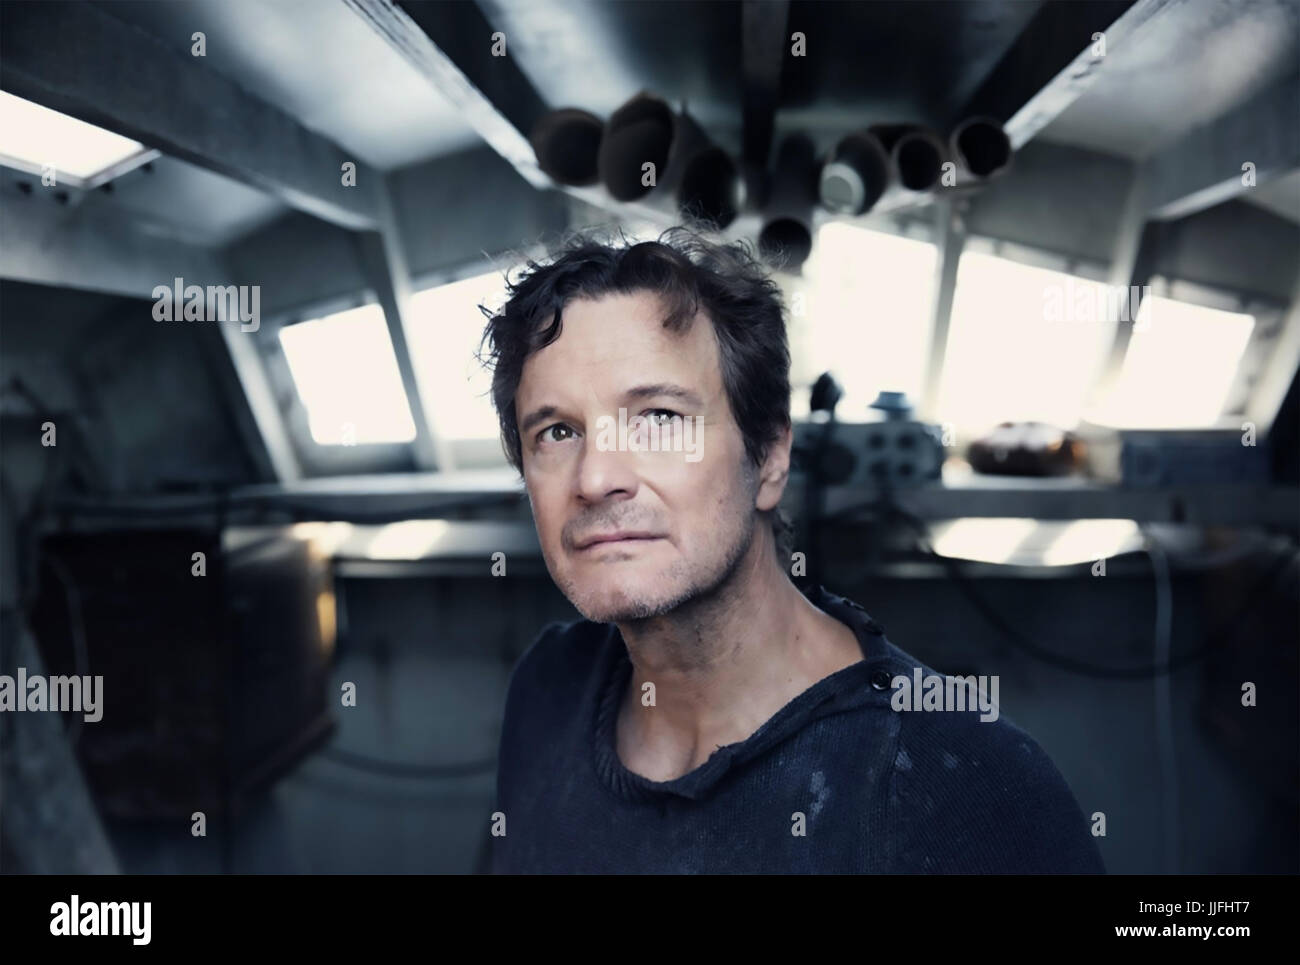 THE MERCY 2017 Blueprint Pictures/BBC film with Colin Firth - Stock Image